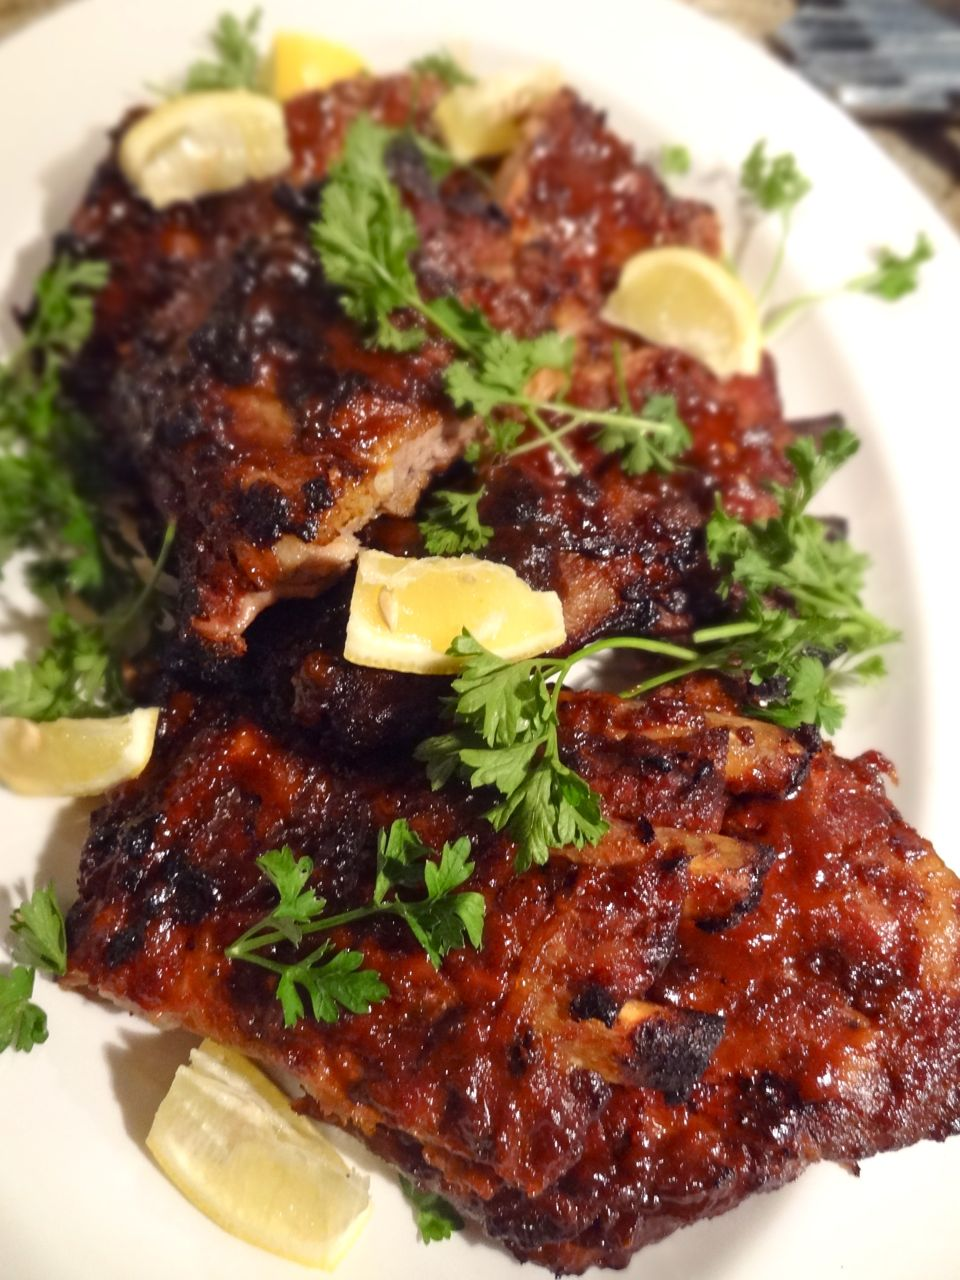 Scrumpdillyicious Ina Gartens Foolproof Ribs With Barbecue Sauce